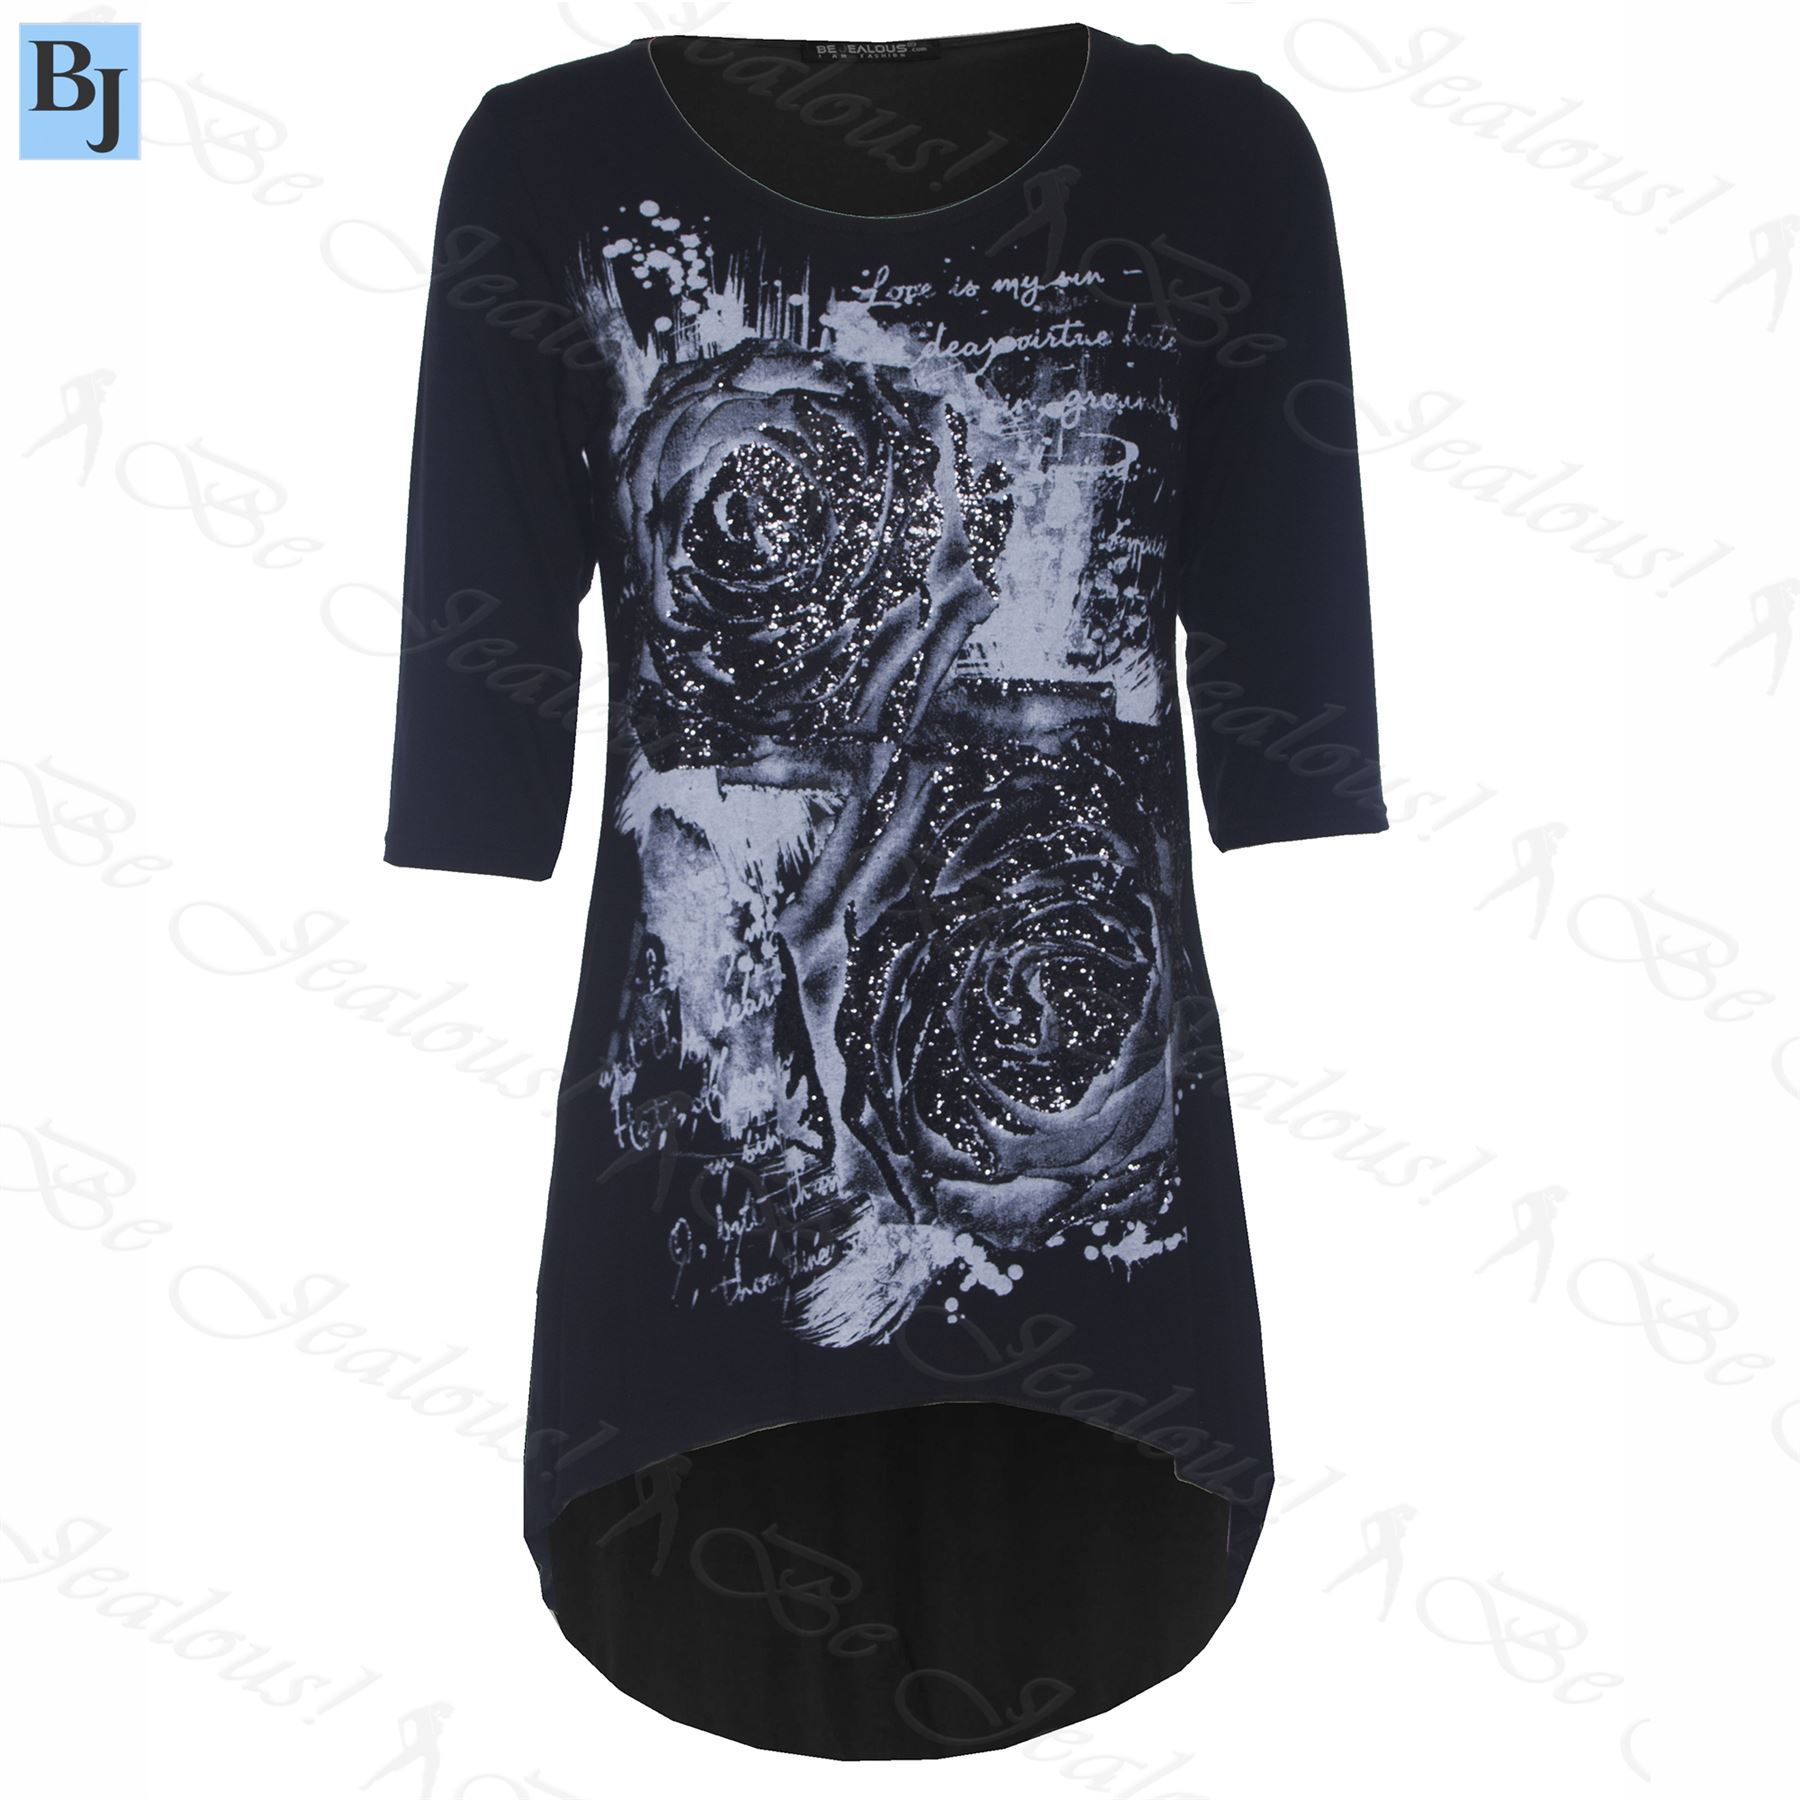 Womens plus size high low top ladies 3 4 sleeve rose for 3 4 sleeve t shirts plus size